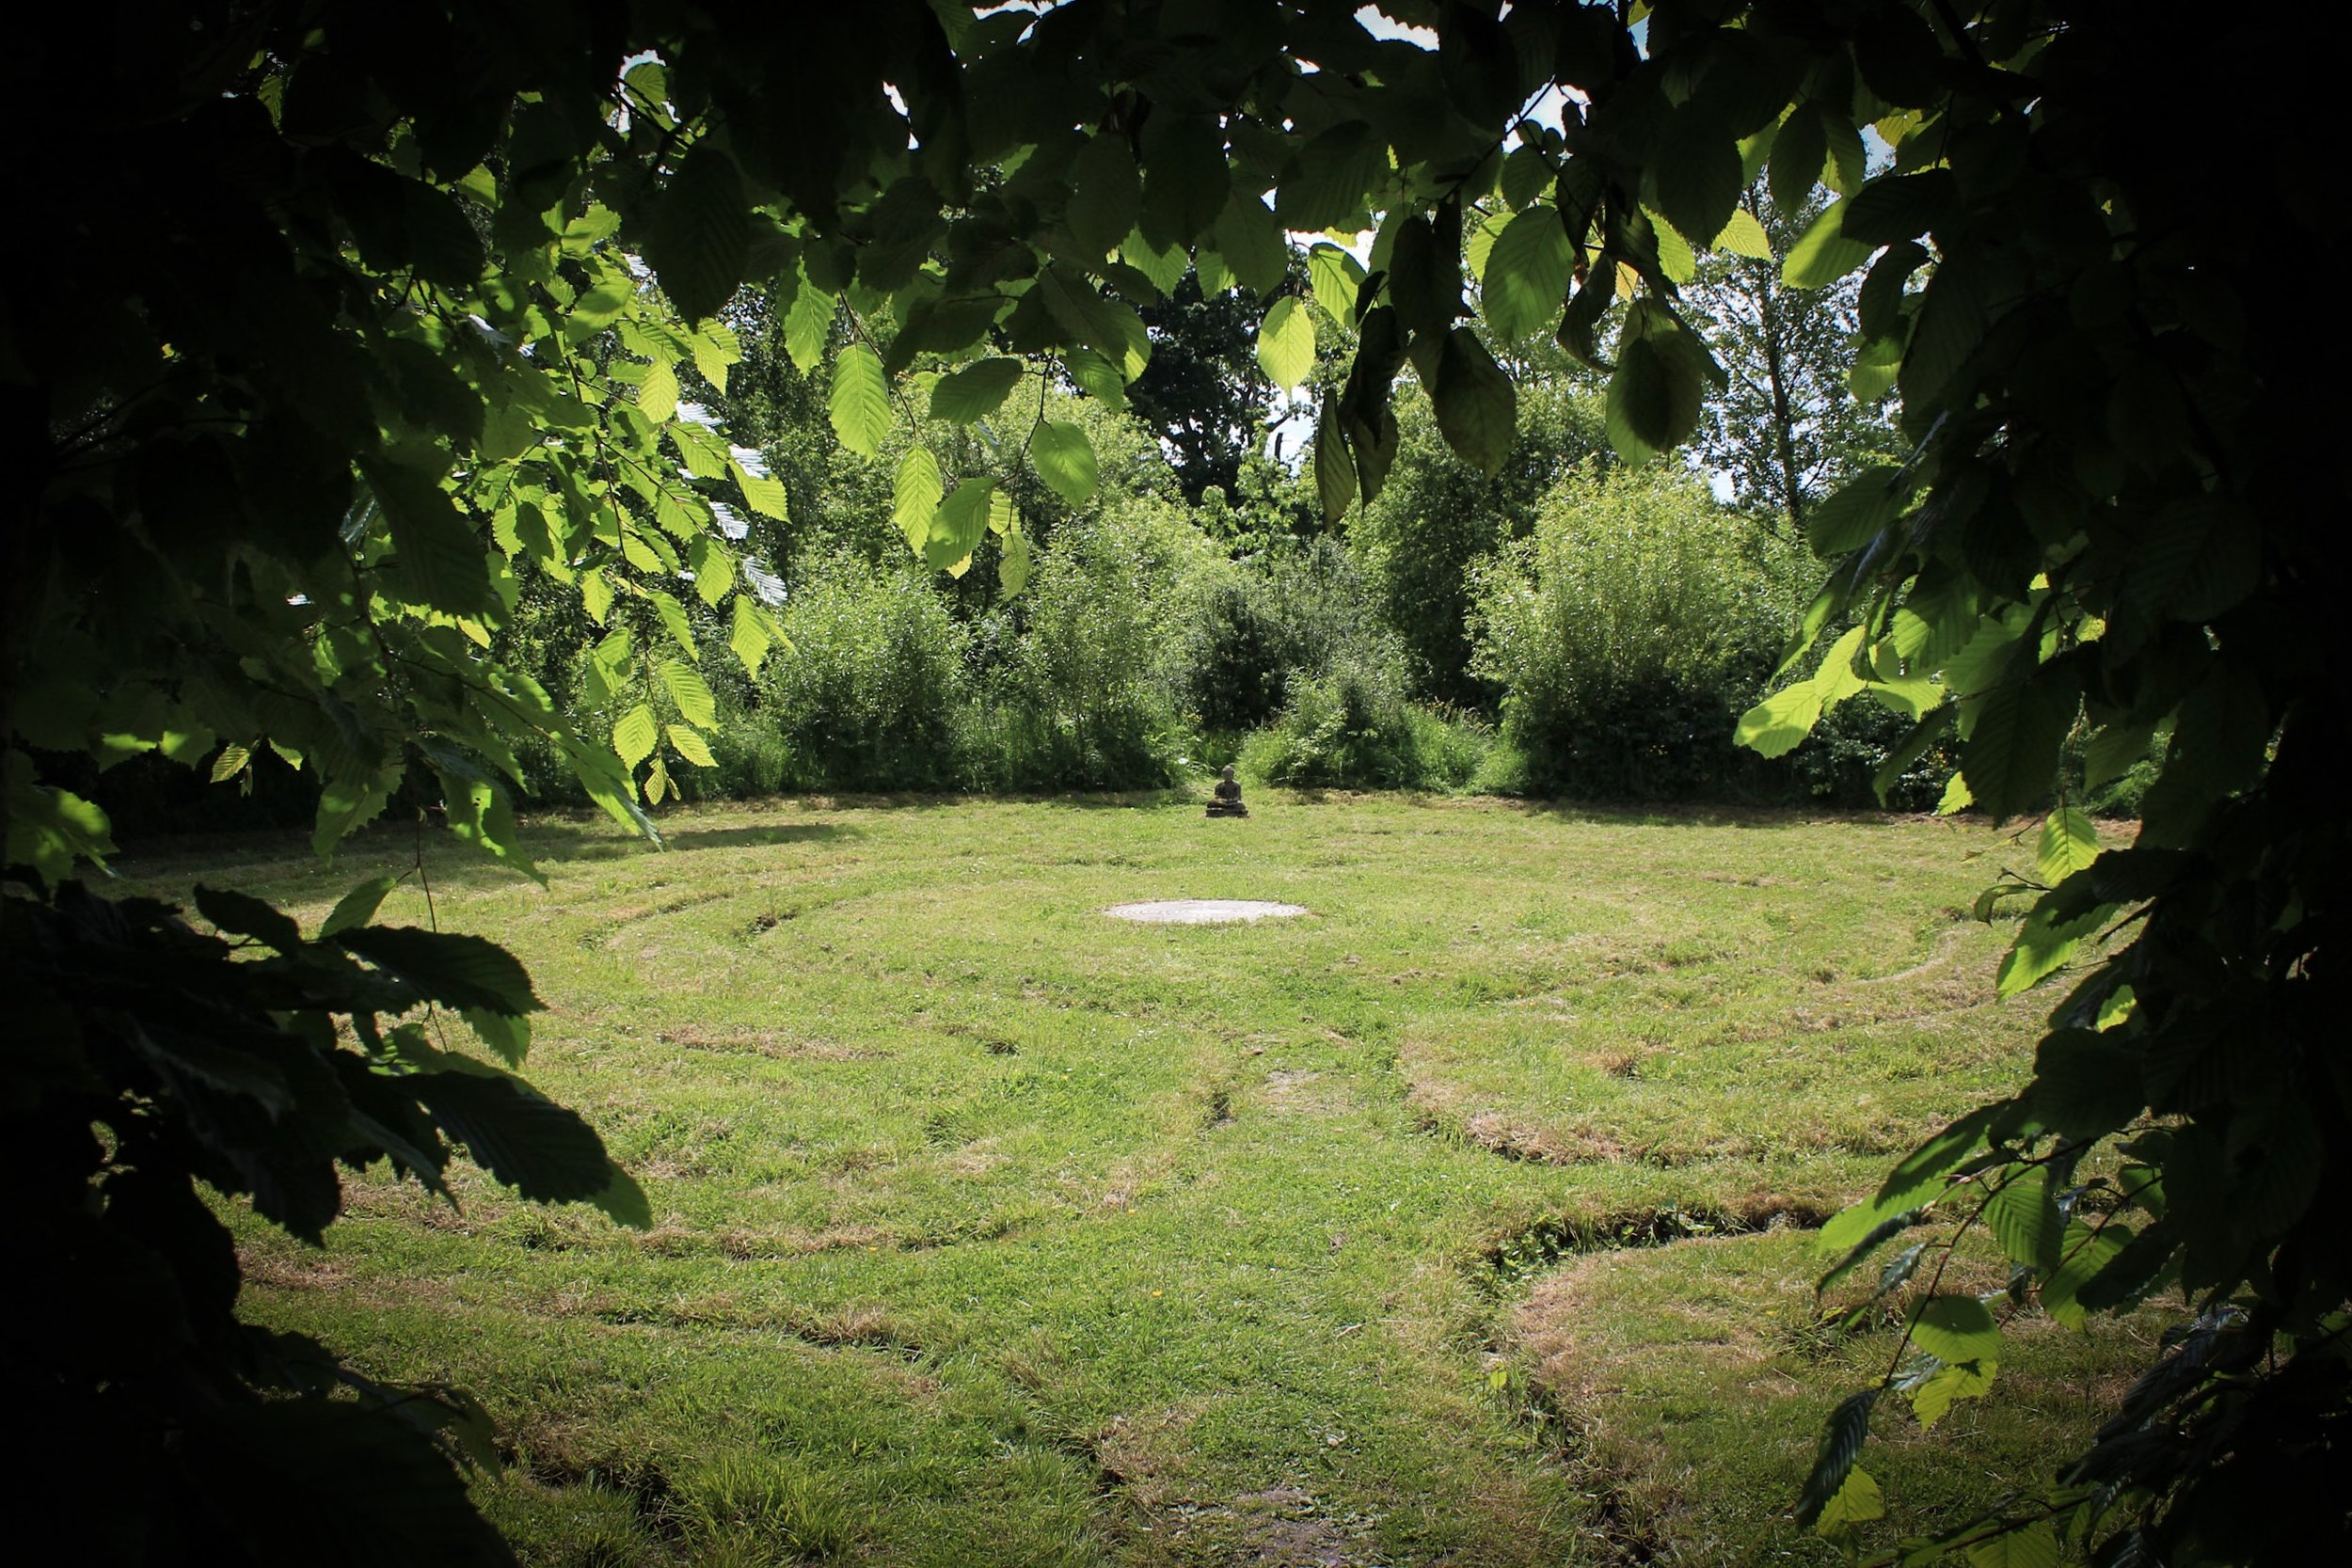 The Mizmaze, and Buddha, children follow the path to the centre, the path is worn deep by thousands of little feet.